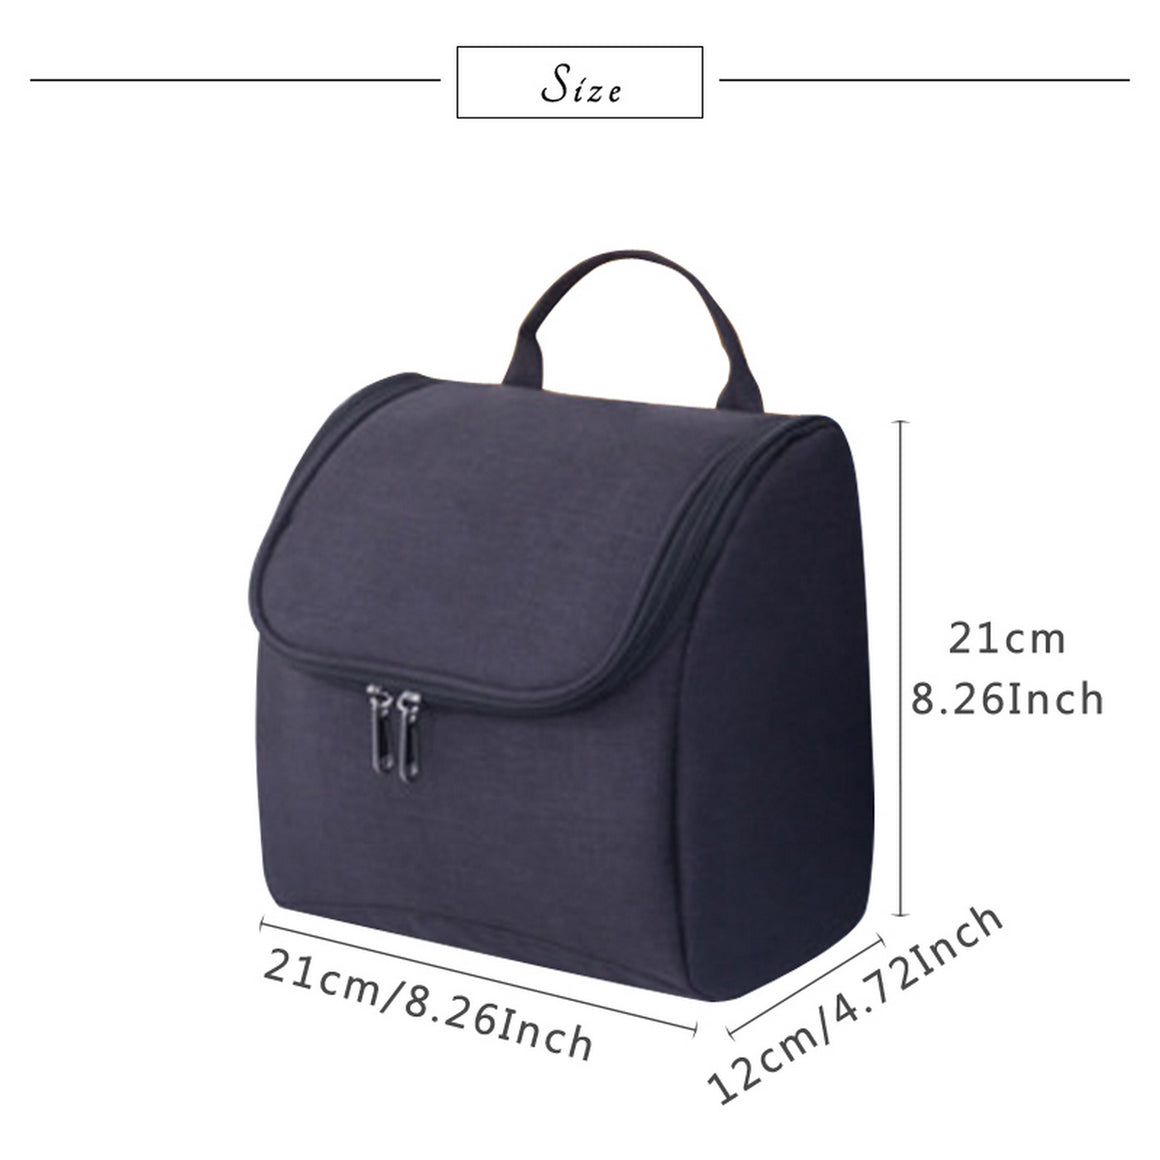 Big Capacity Travel Toiletry Bag For Men Professional Waterproof Toilet Organizer Case Women Beauty Cosmetic Makeup Bags 319